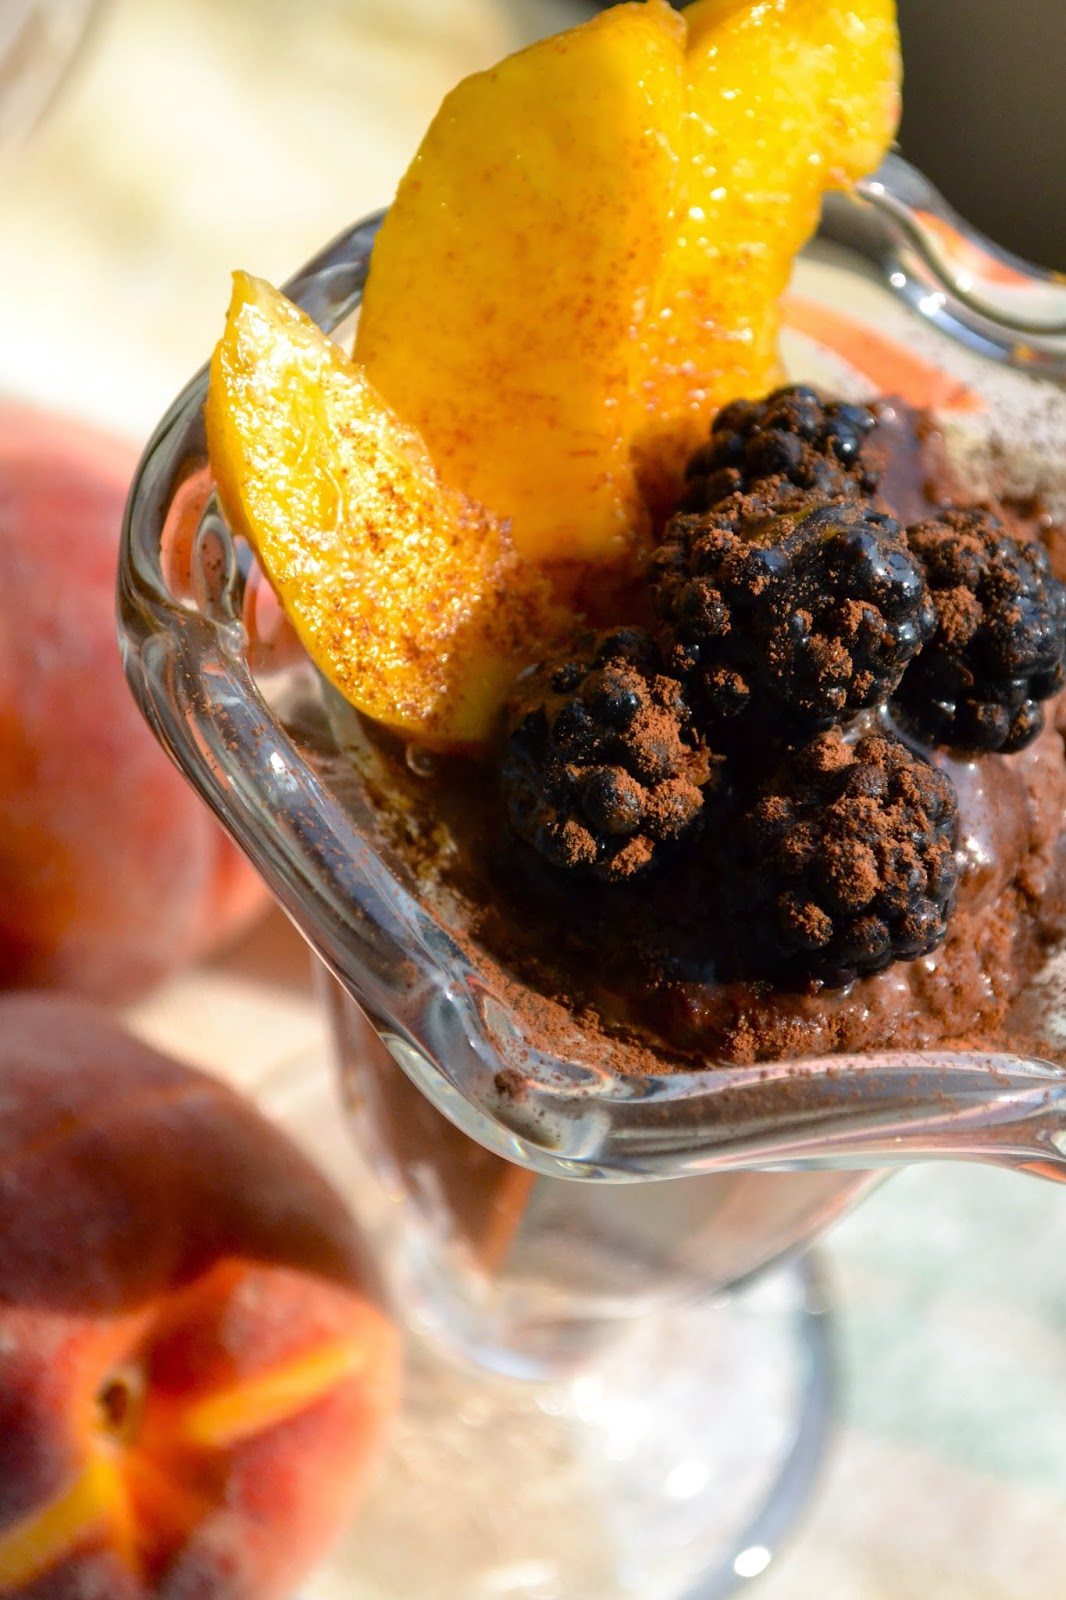 chocolate chia pudding with blackberries and peaches